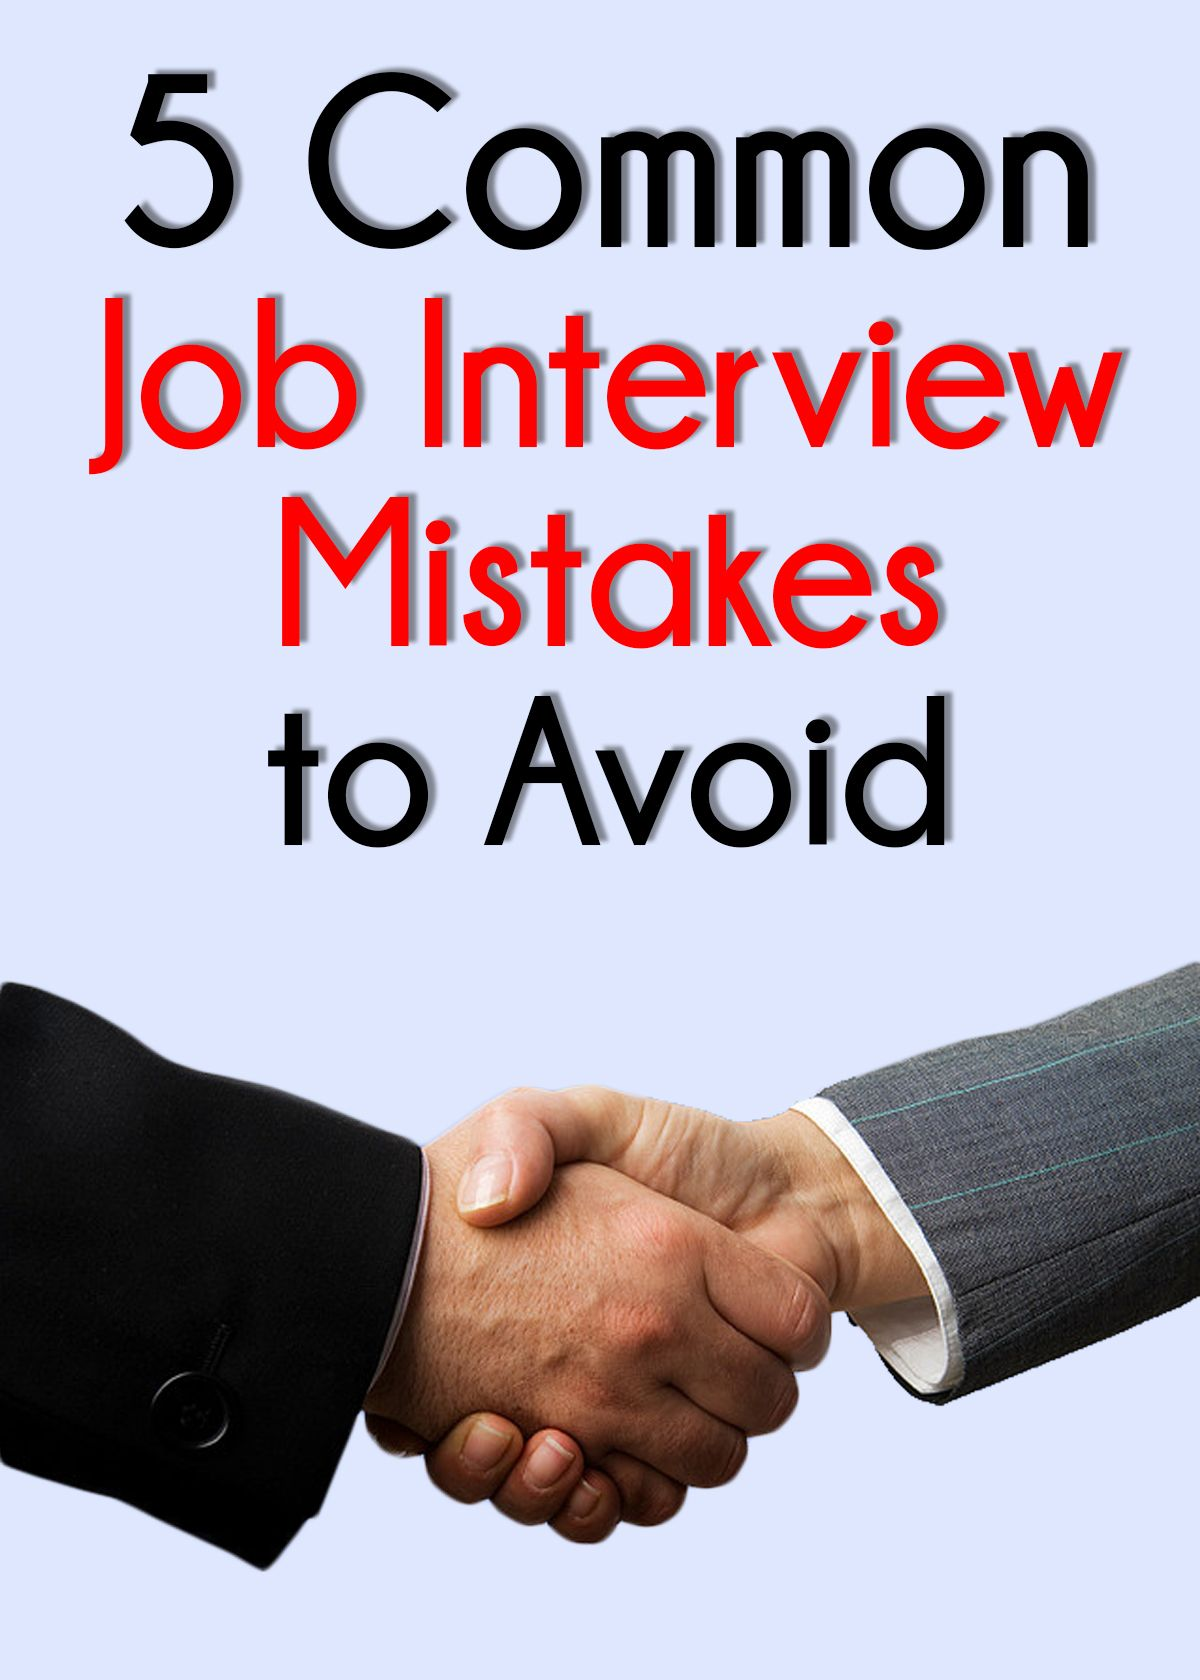 best images about interview tips avoid these mistakes to land 17 best images about interview tips avoid these mistakes to land your dream job interview videos and body language